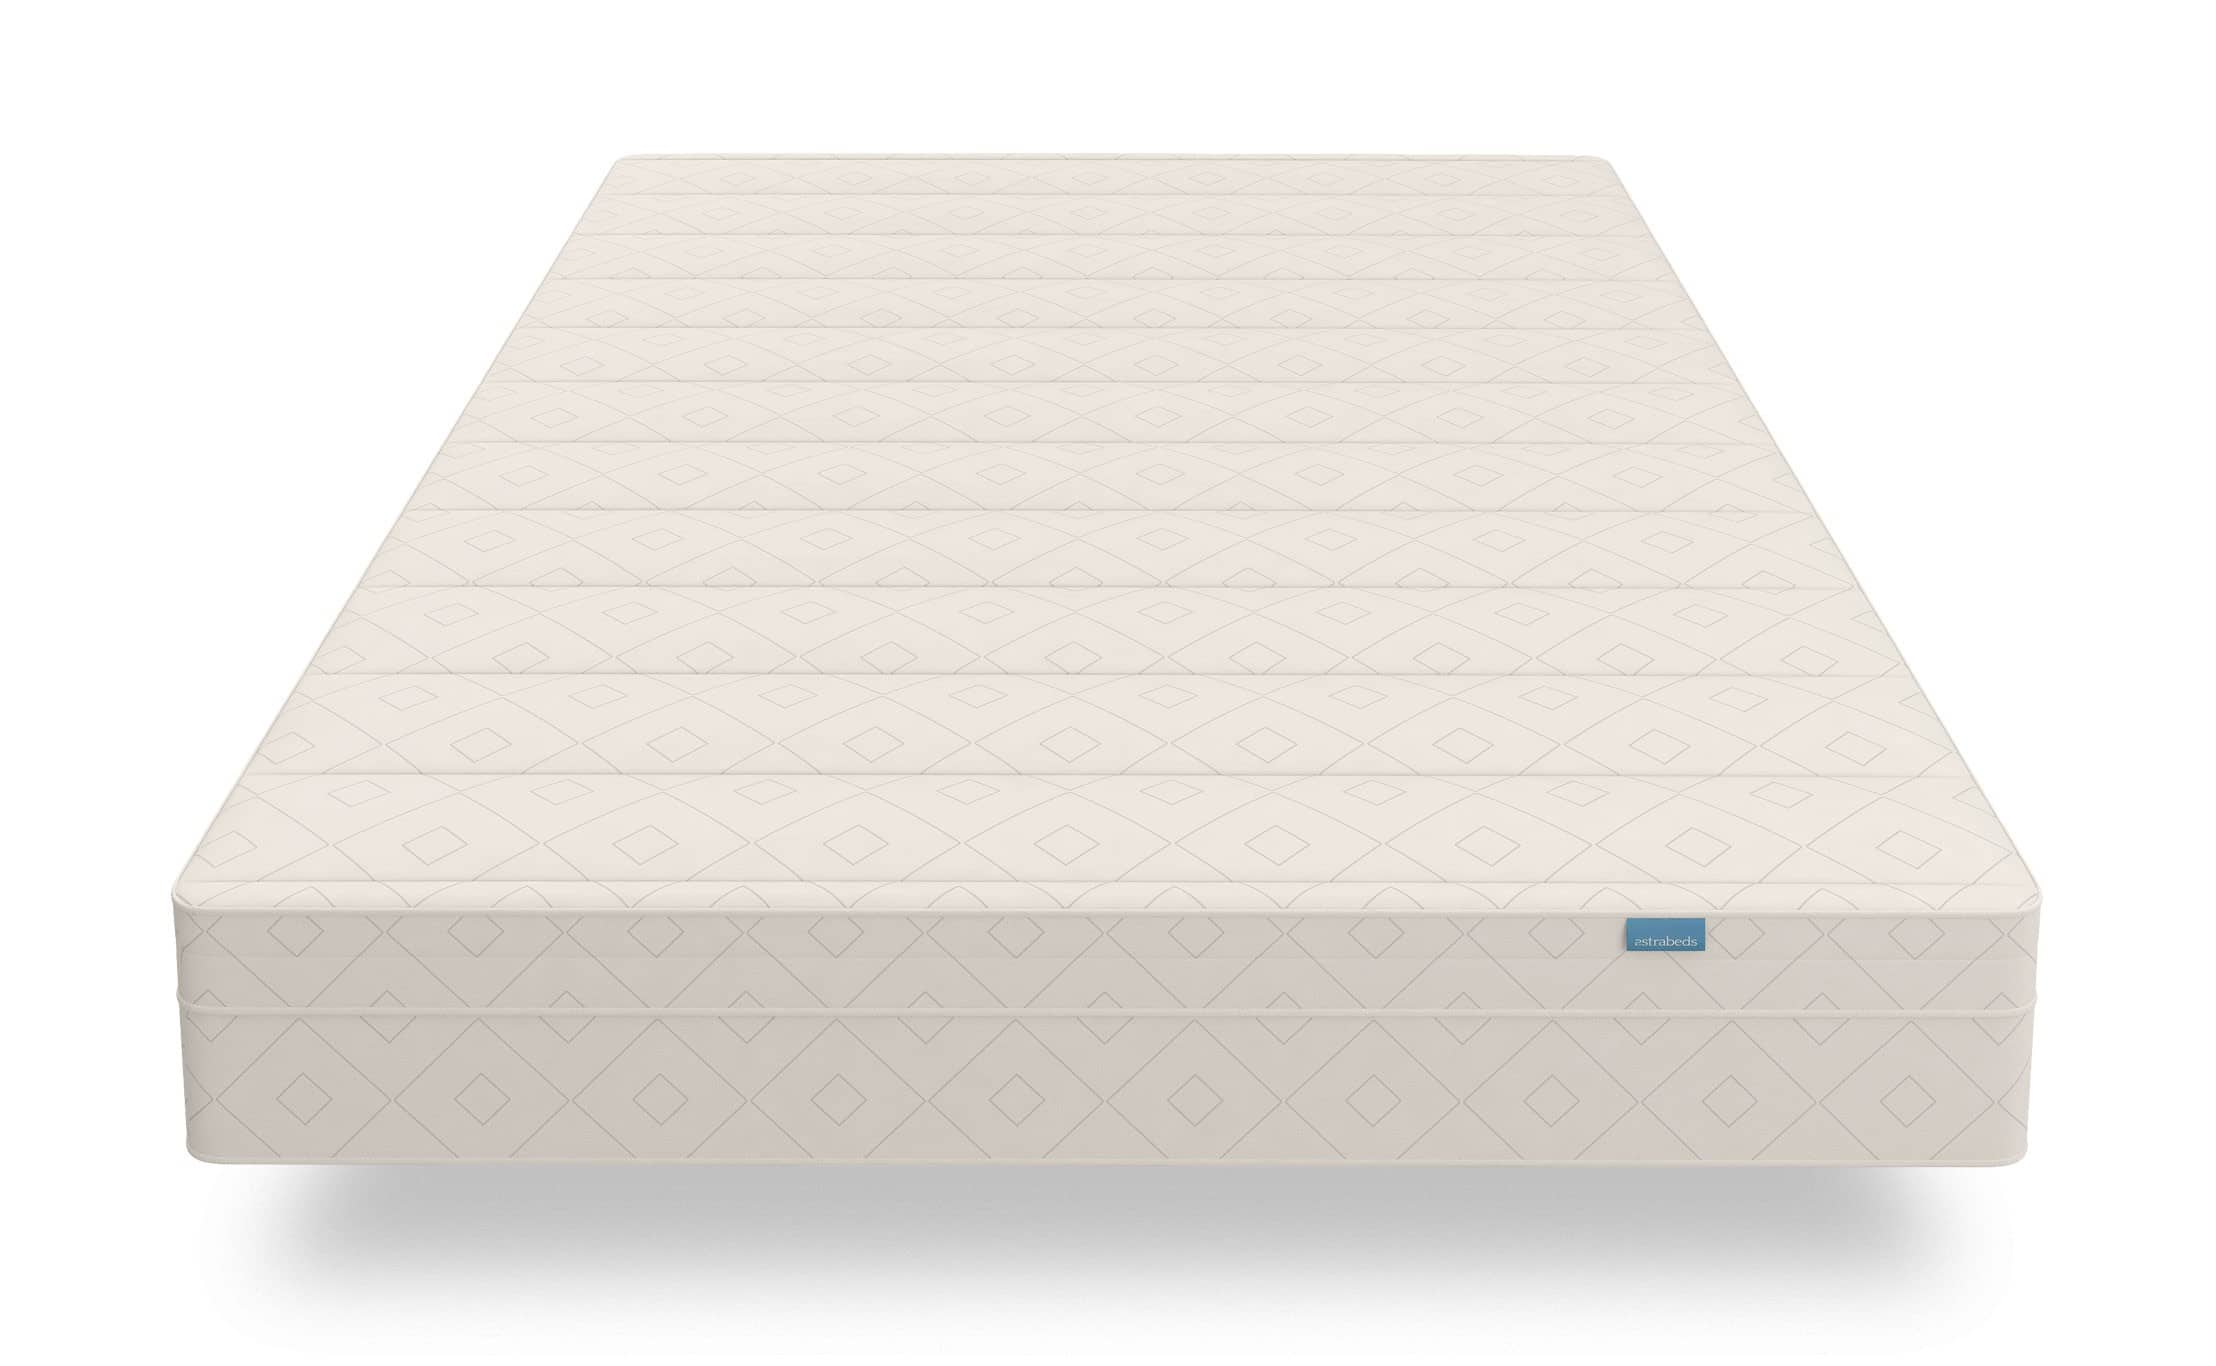 Avoiding common mistakes before purchasing a mattress